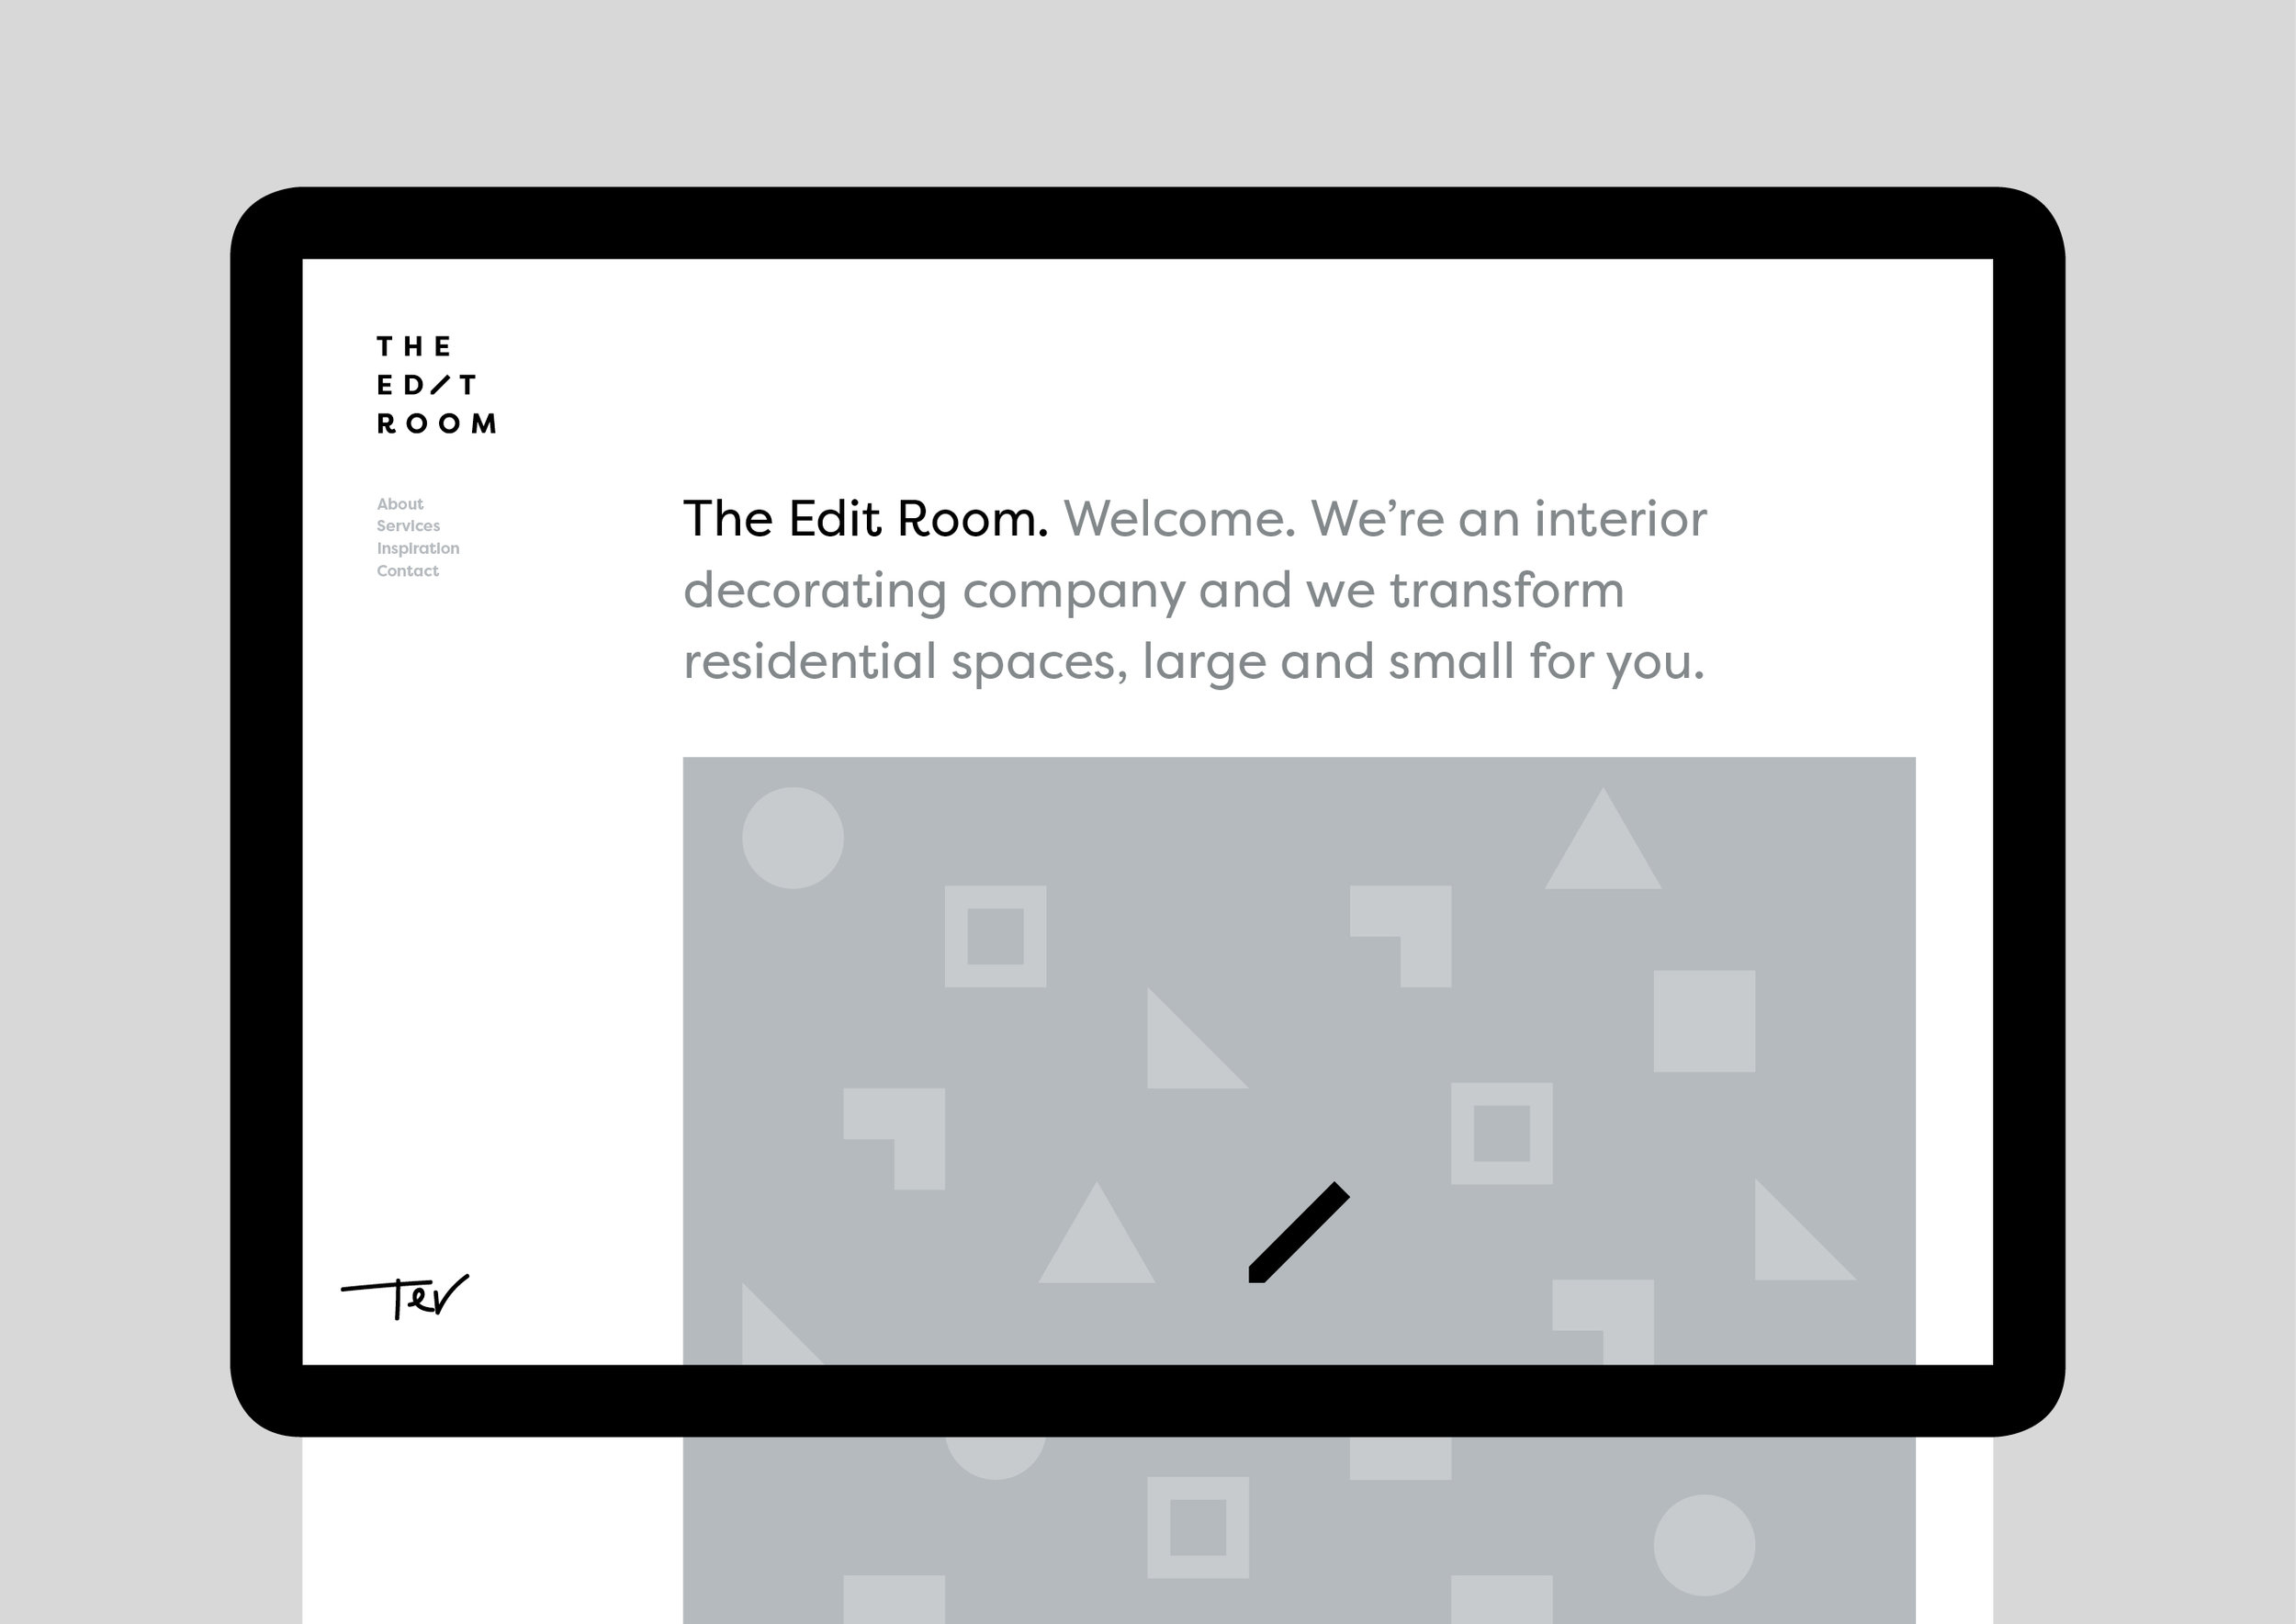 The Edit Room website